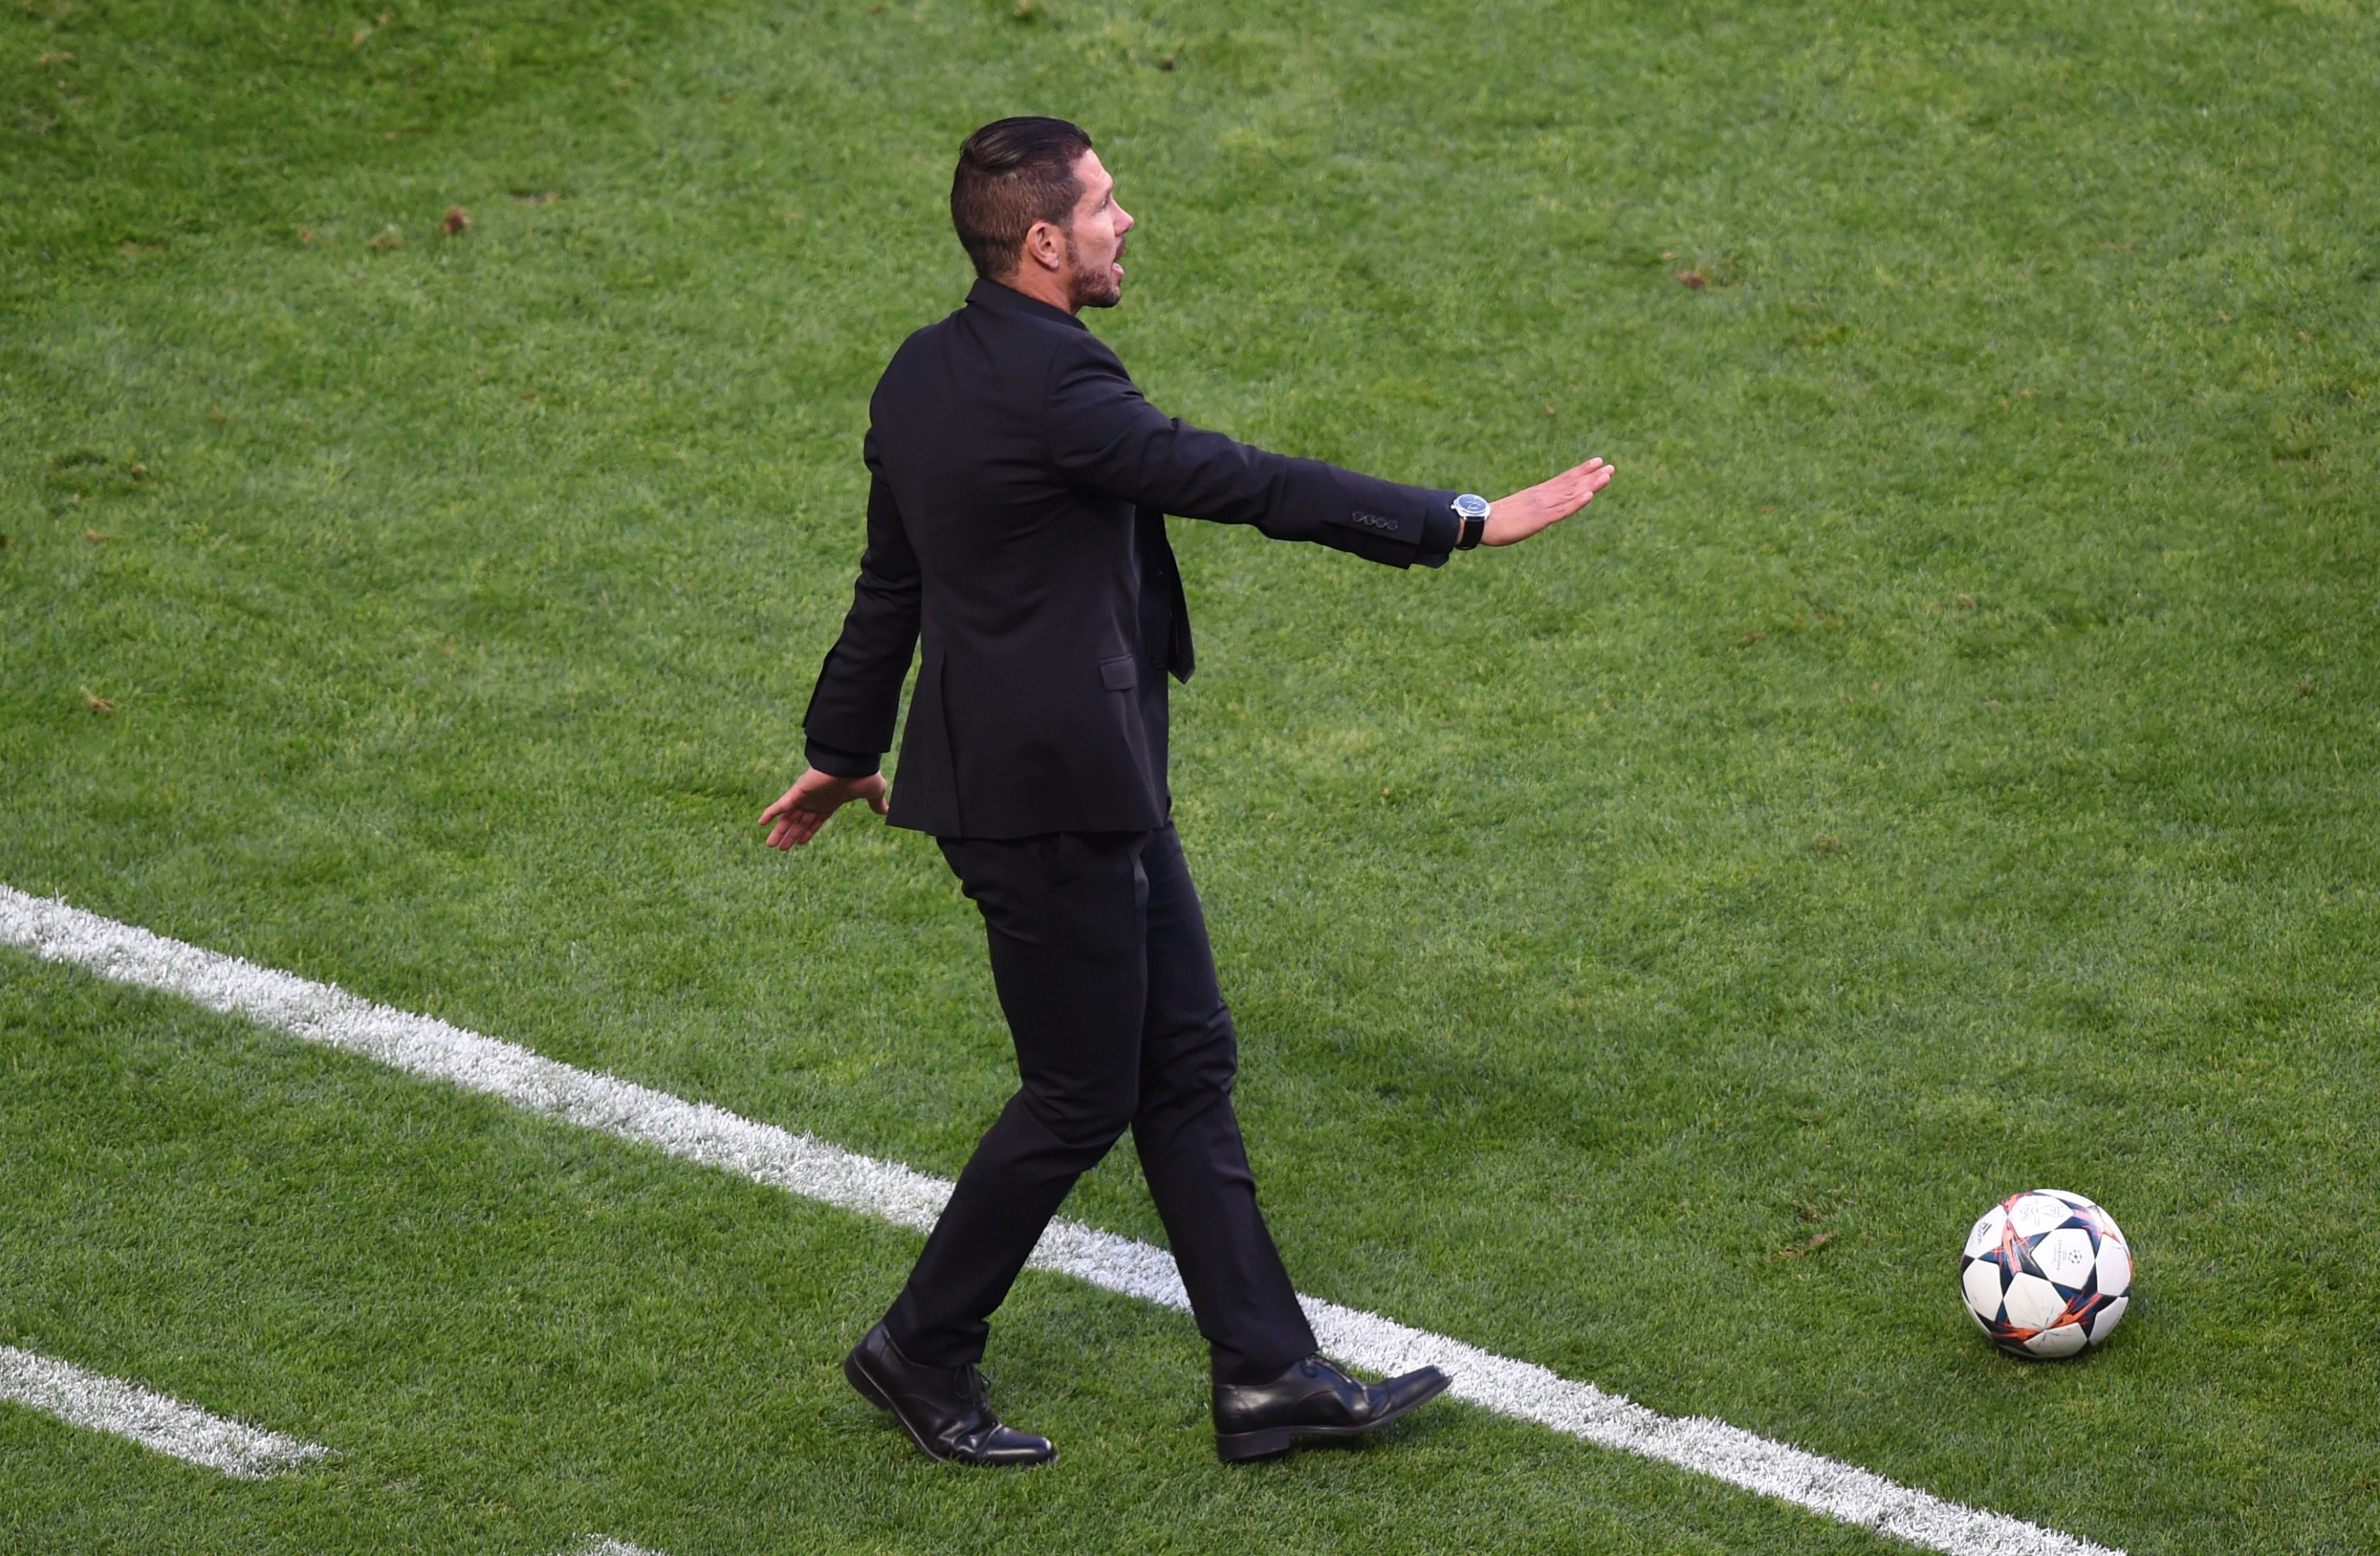 Diego Simeone, treinador do Atlético de Madrid